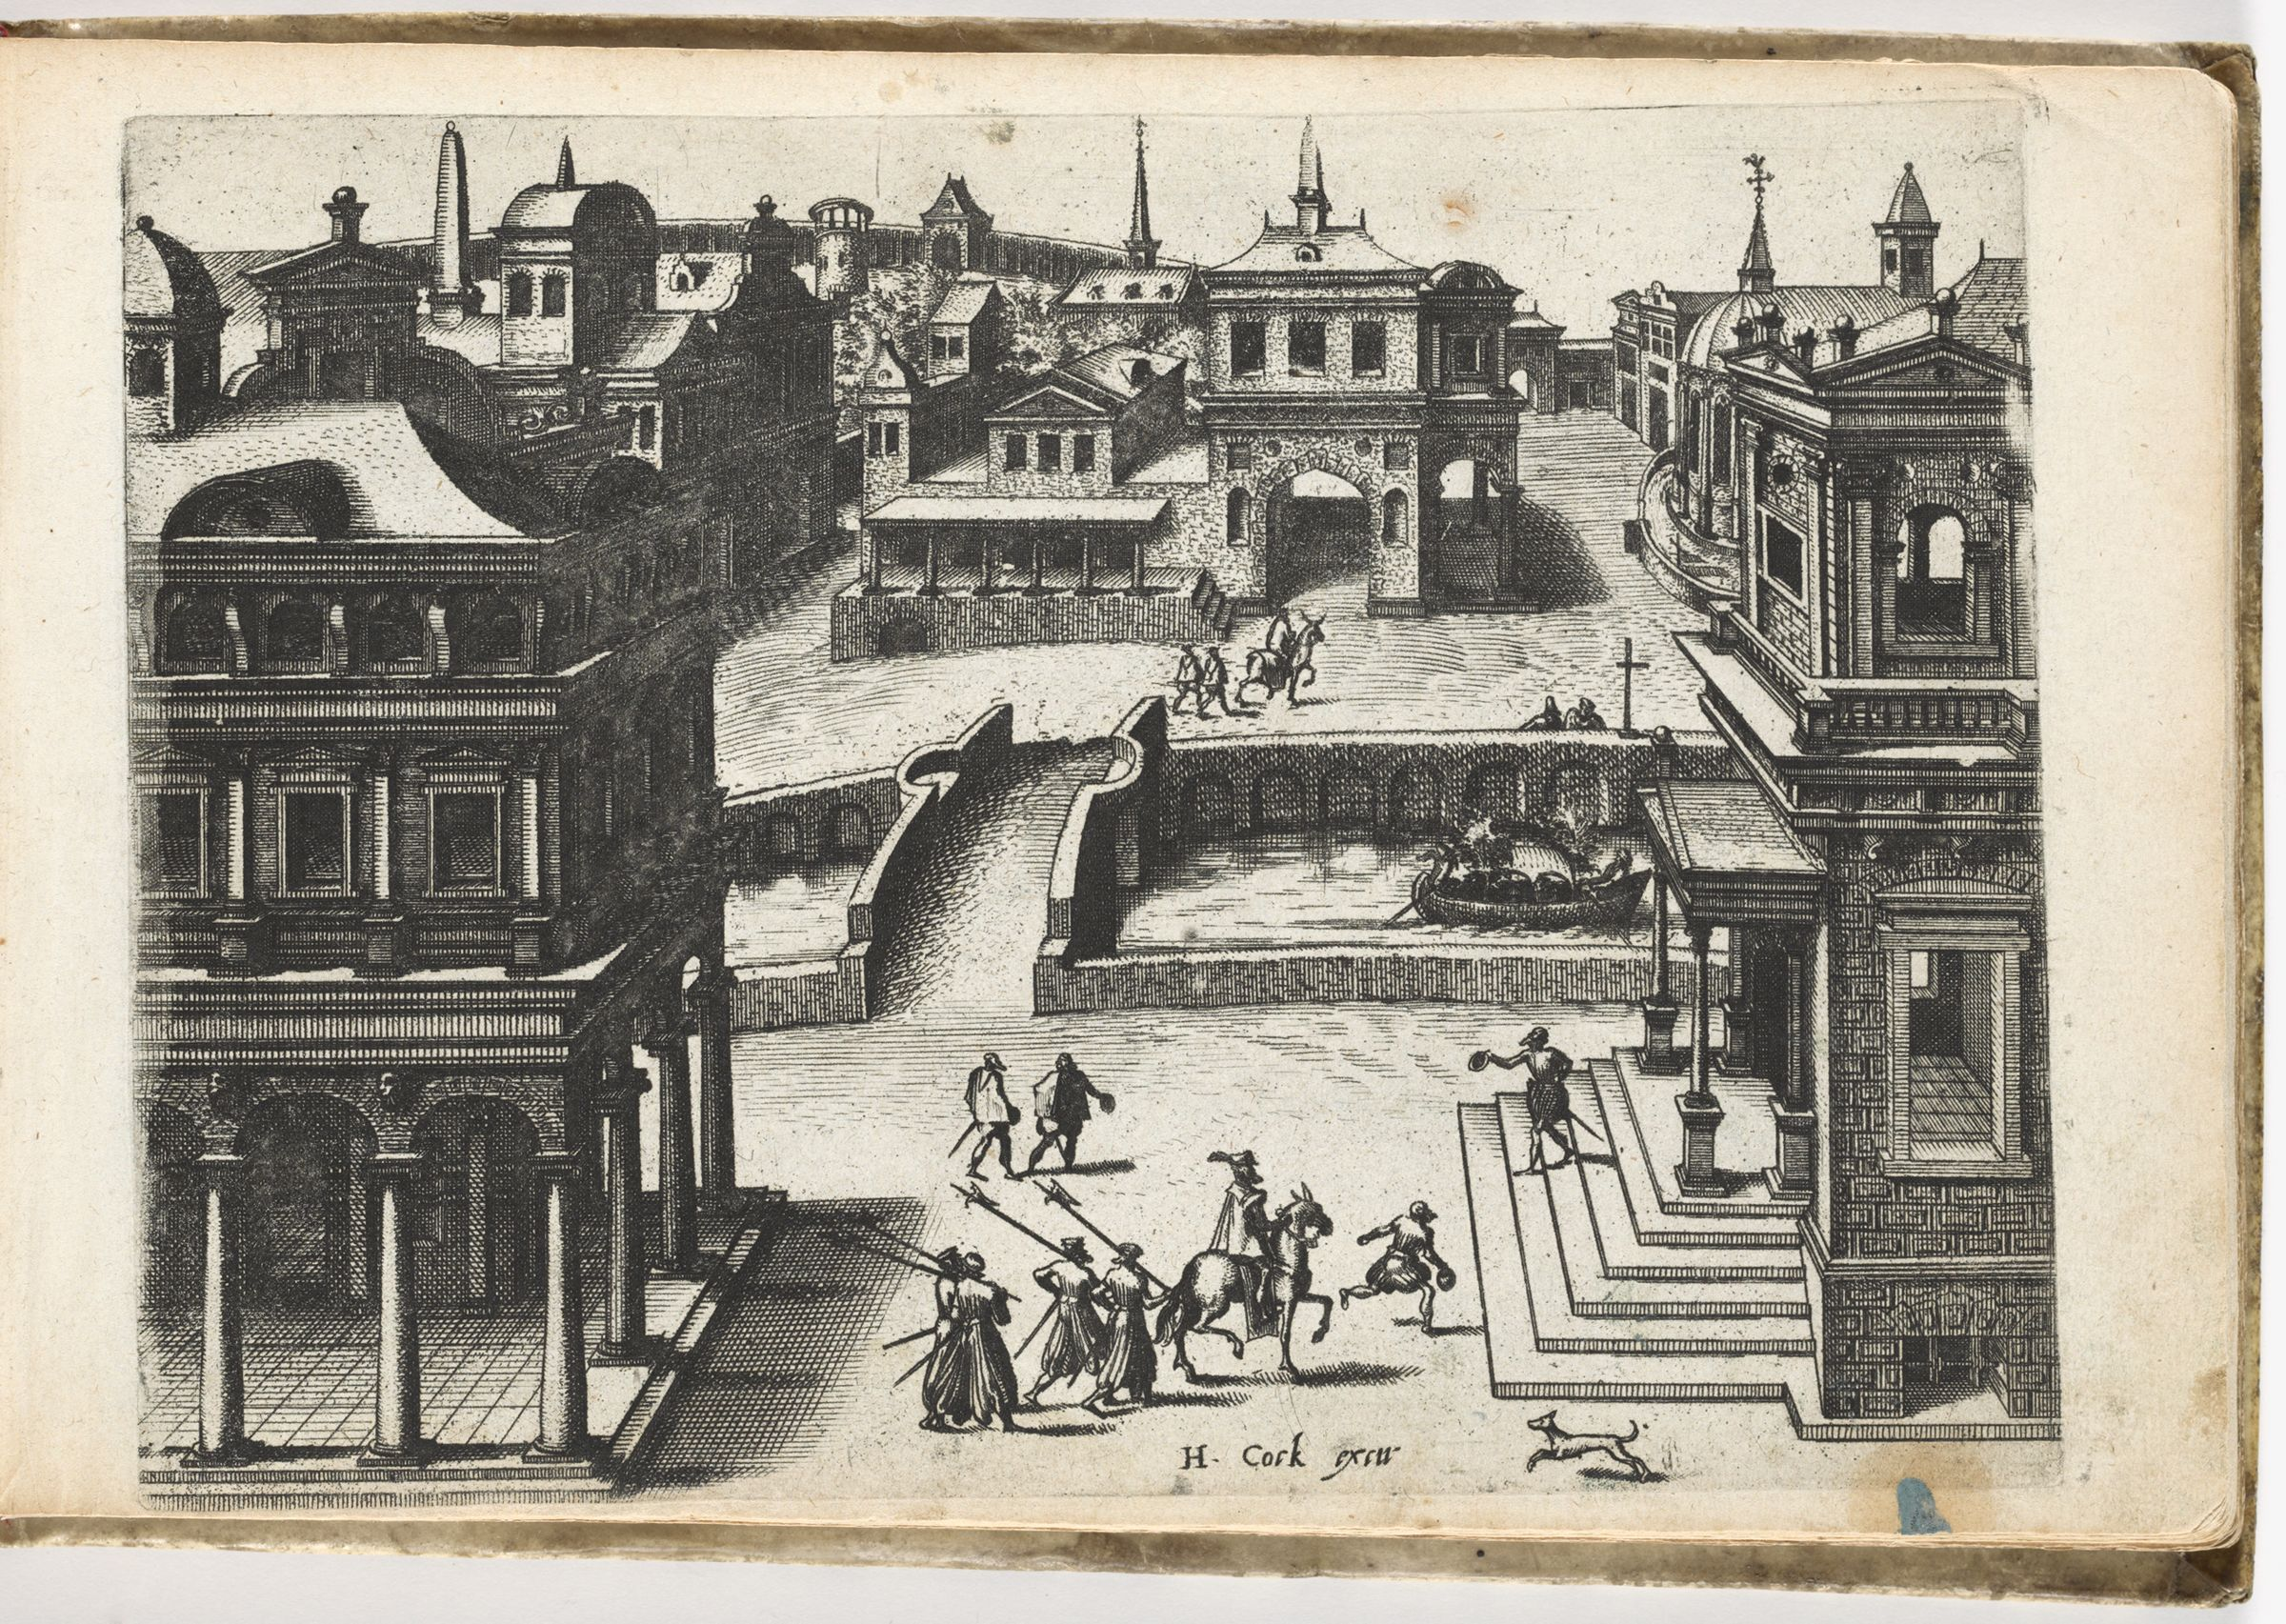 Bird's-Eye View Of A Town With Palaces And A Canal, From The Steps Of A Building In The Right Foreground A Man Is Greeting A Rider On Horseback (N.h.)